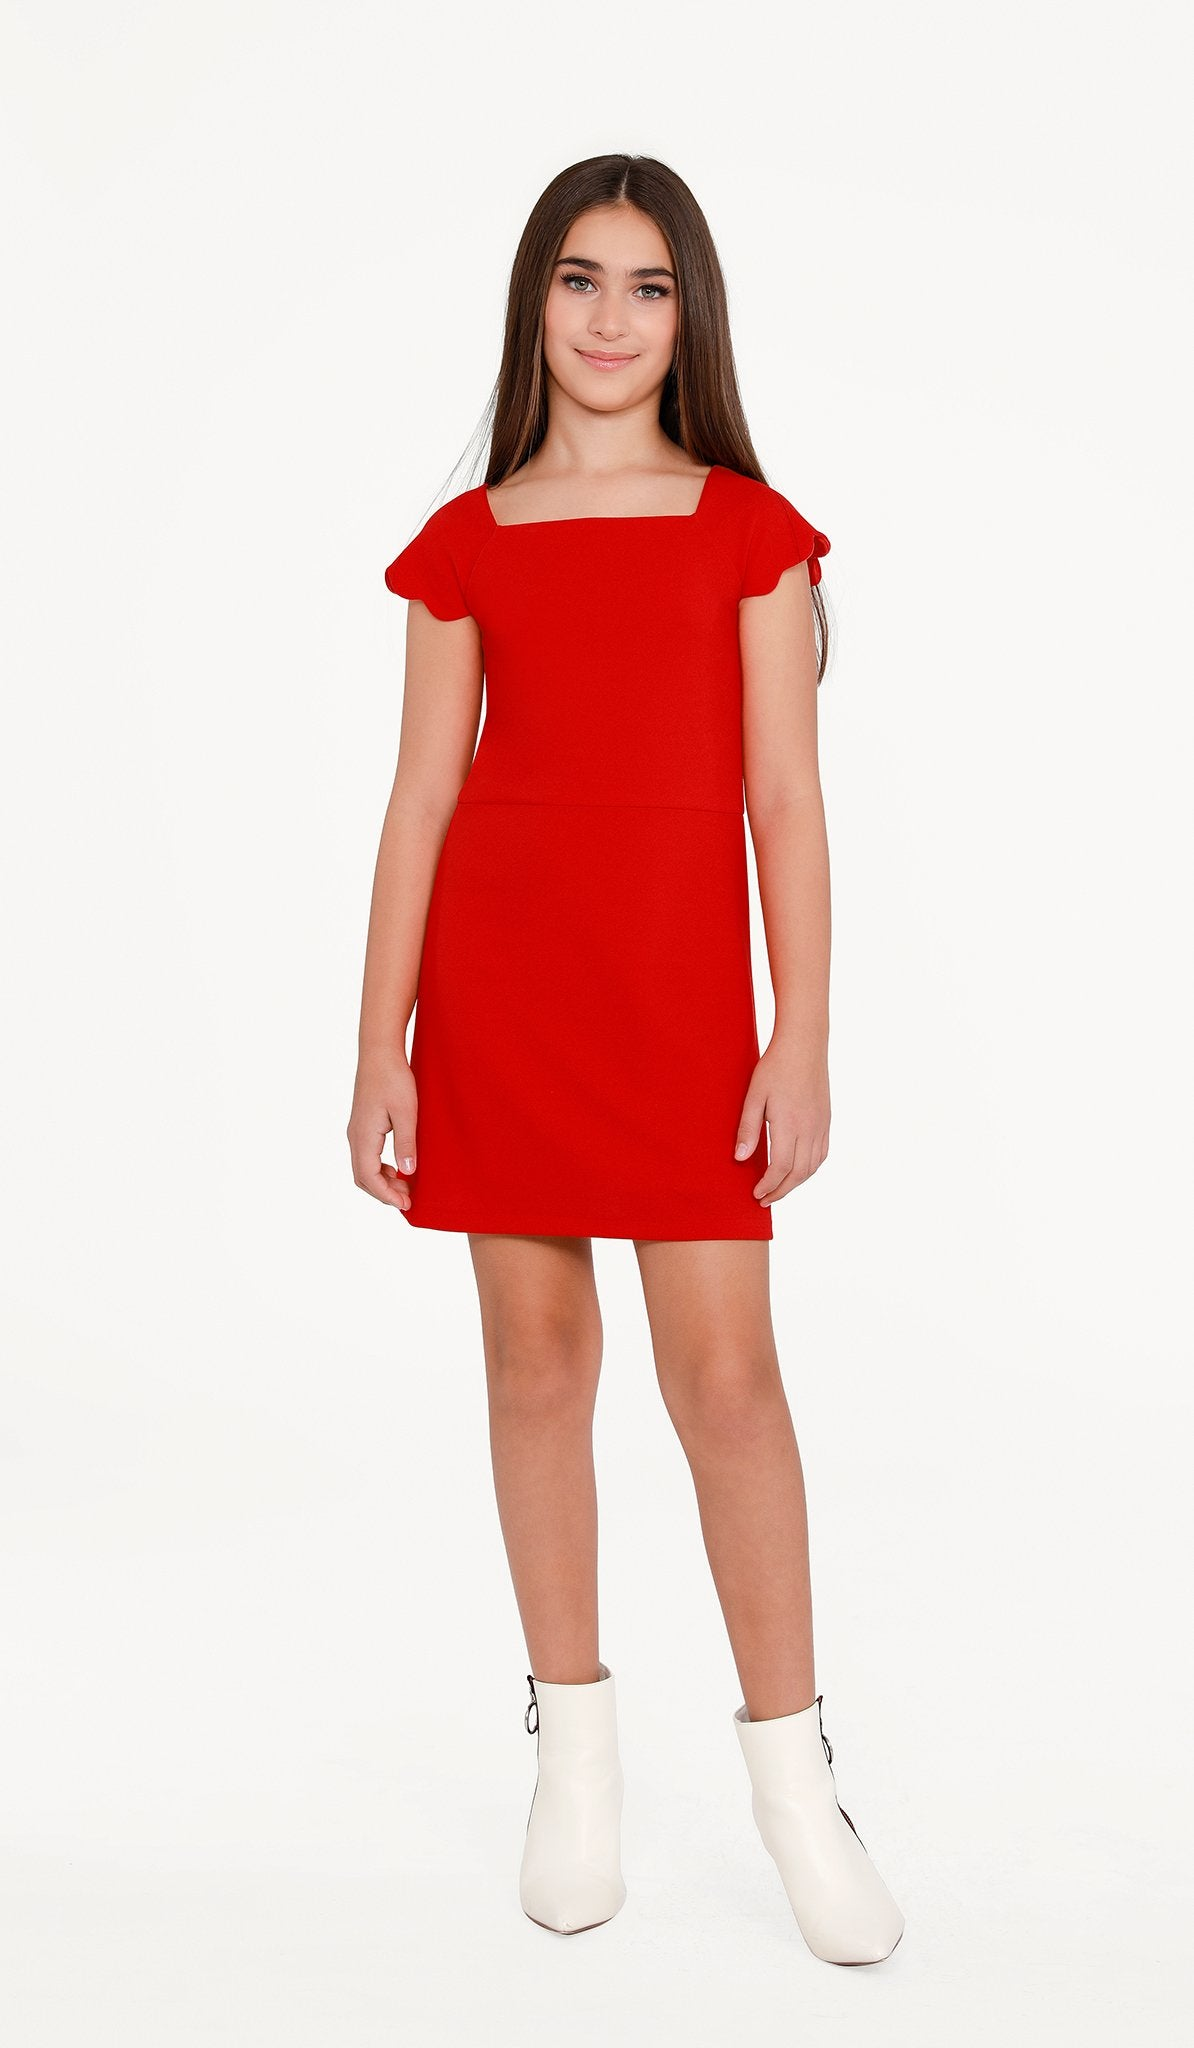 Sally Miller Poppy Serena Dress Hot poppy textured knit Aline dress with scallop cap | Event & Party Dresses for Tween Girls & Juniors | Weddings Dresses, Bat Mitzvah Dresses, Sweet Sixteen Dresses, Graduation Dresses, Birthday Party Dresses, Bar Mitzvah Dresses, Cotillion Dresses